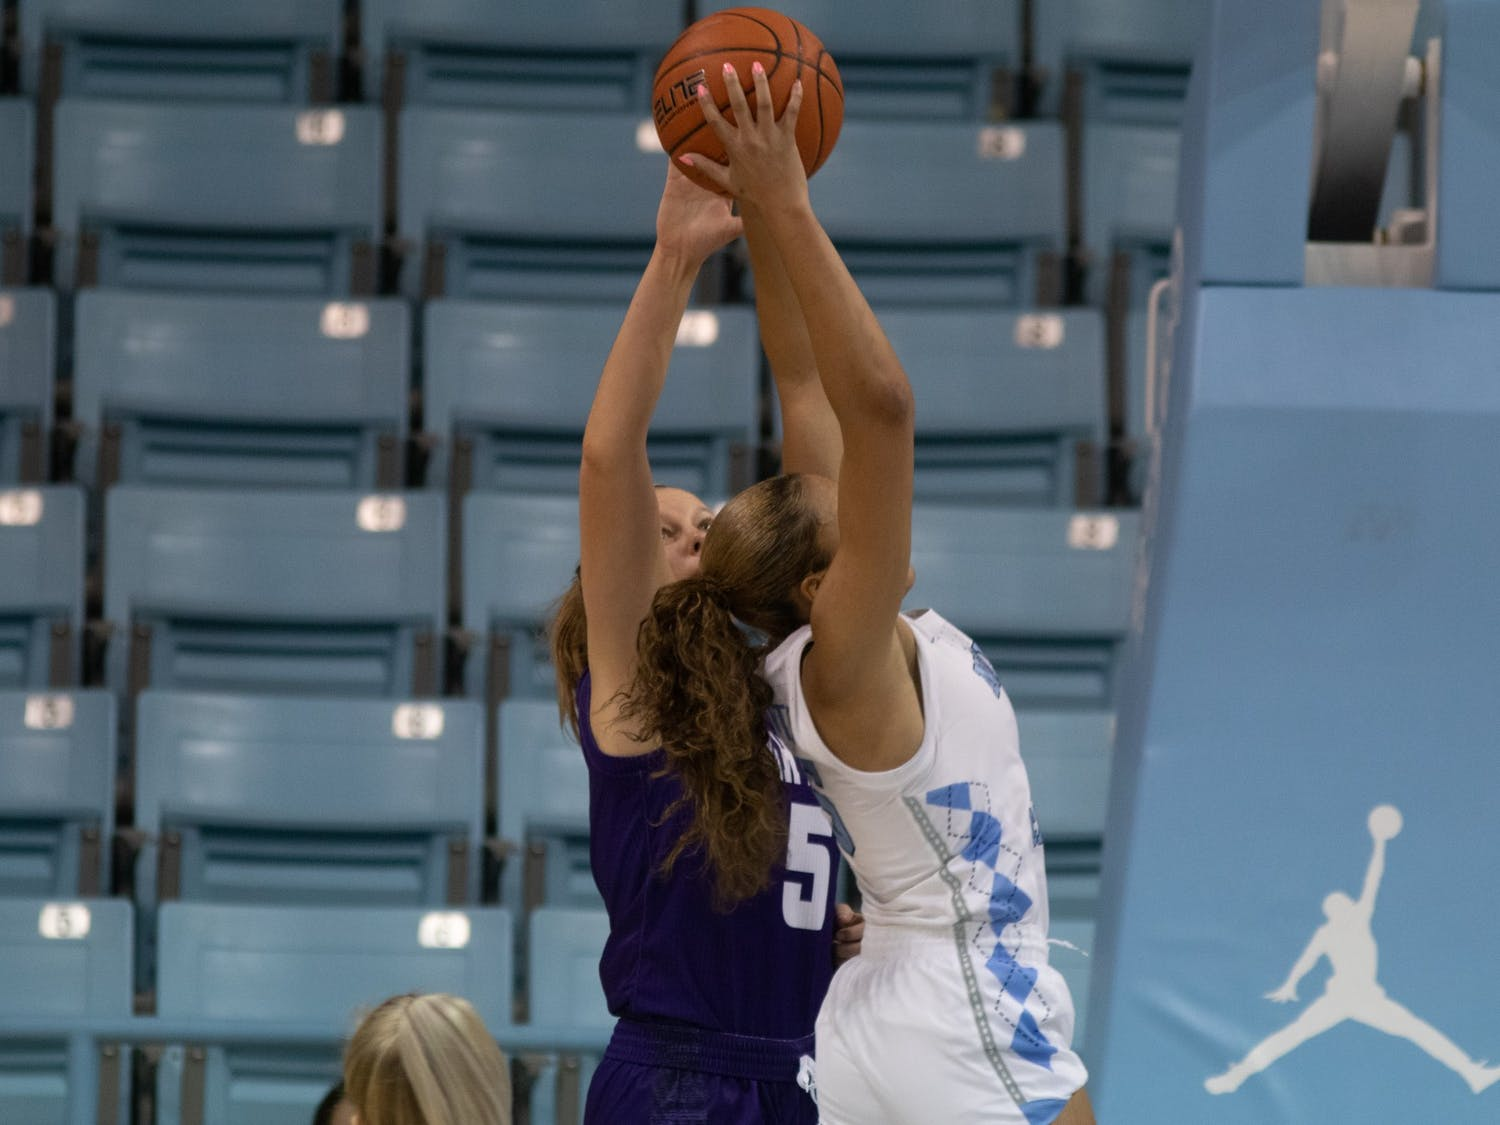 UNC graduate guard Stephanie Watts (5) corrals a rebound during Carolina's 95-70 win over High Point at Carmichael Arena, November 29, 2020.